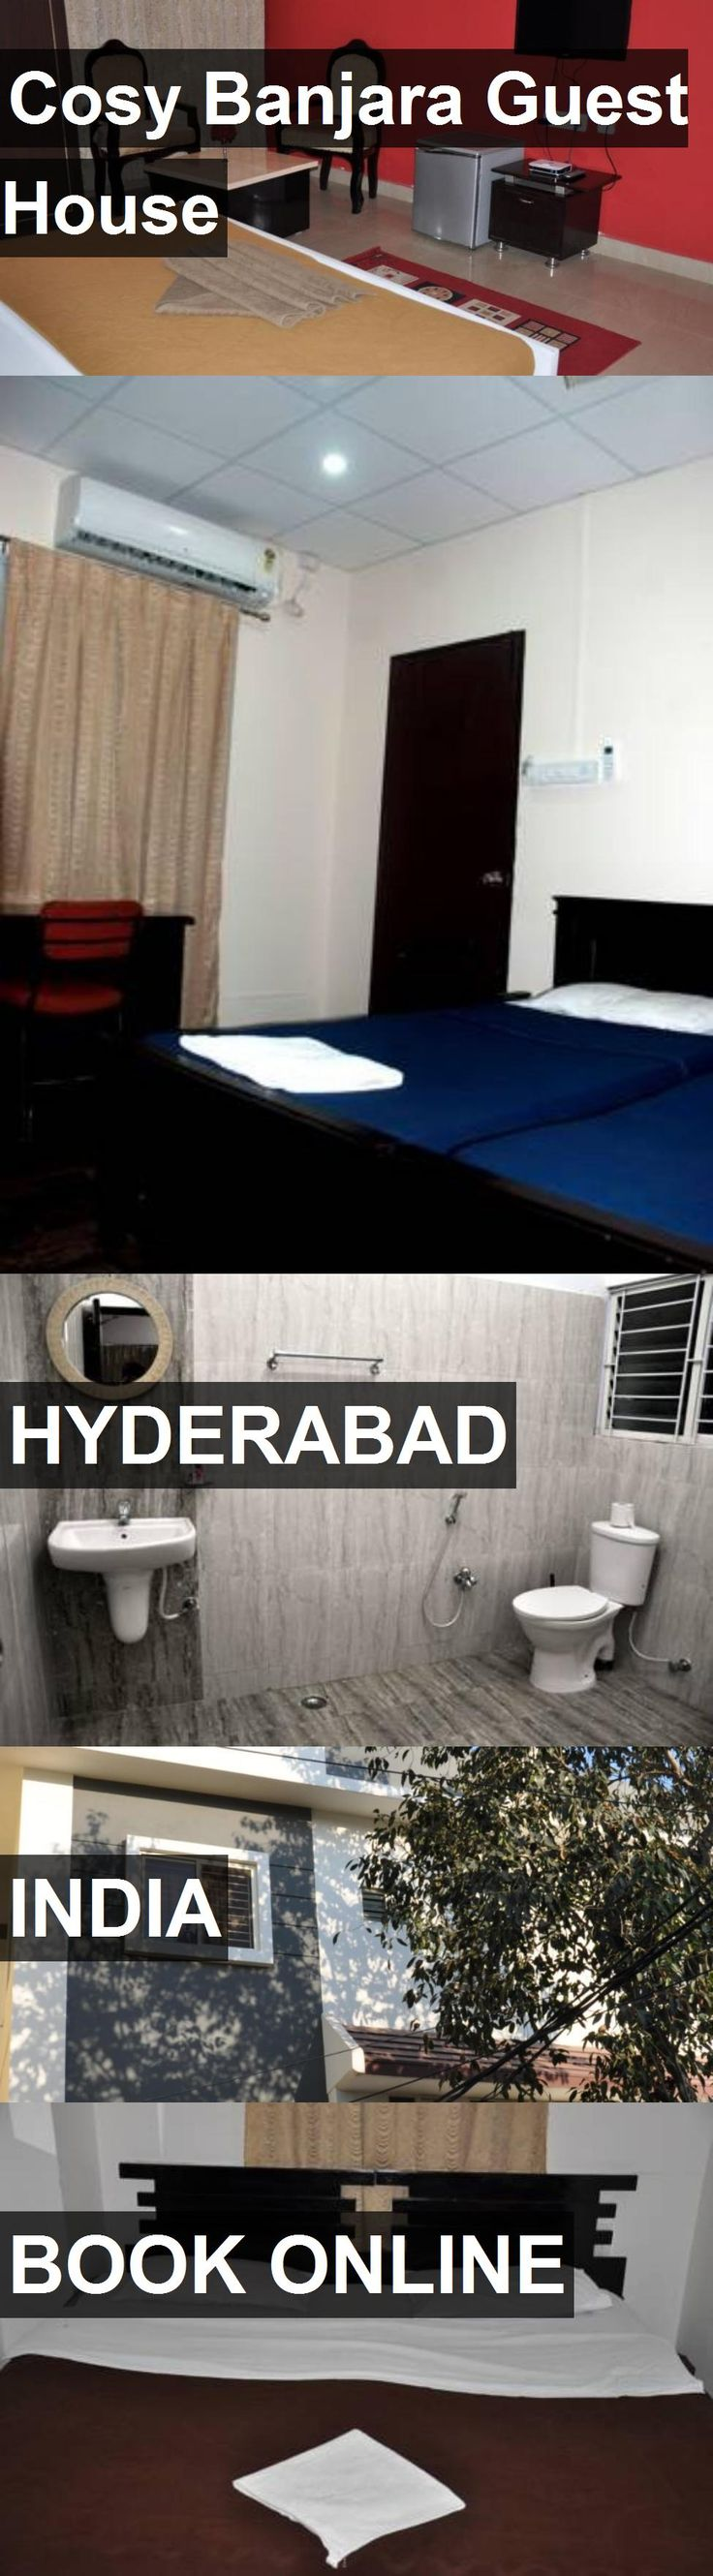 Cosy Banjara Guest House in Hyderabad, India. For more information, photos, reviews and best prices please follow the link. #India #Hyderabad #travel #vacation #guesthouse